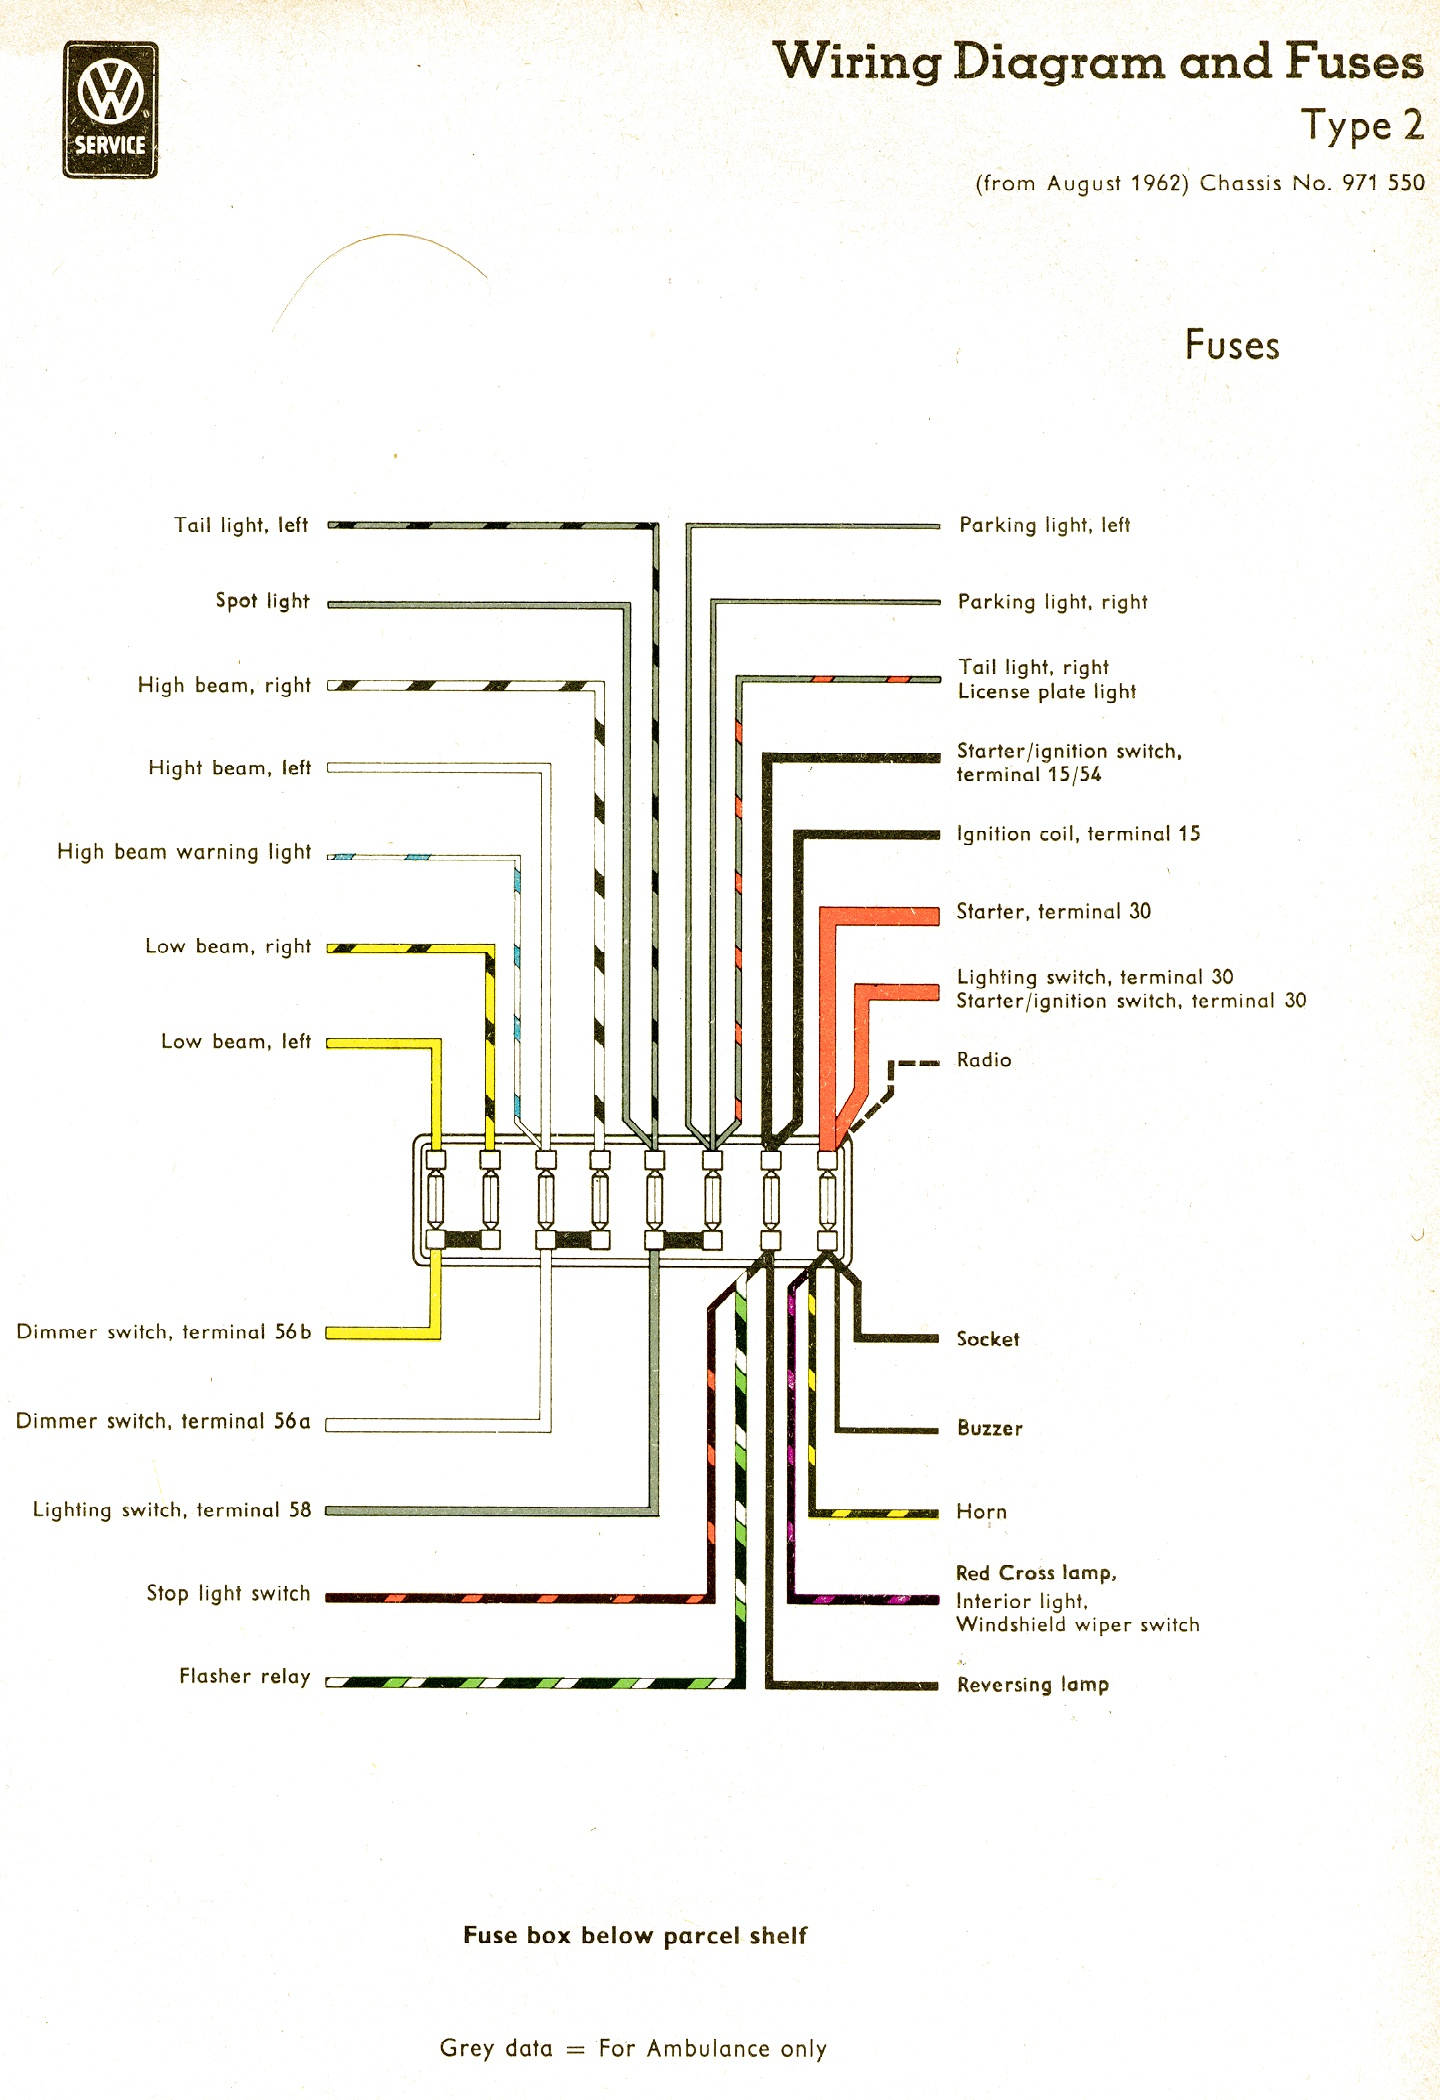 bus 62 fuse vw wiring diagrams 1973 vw beetle fuse box diagram at readyjetset.co